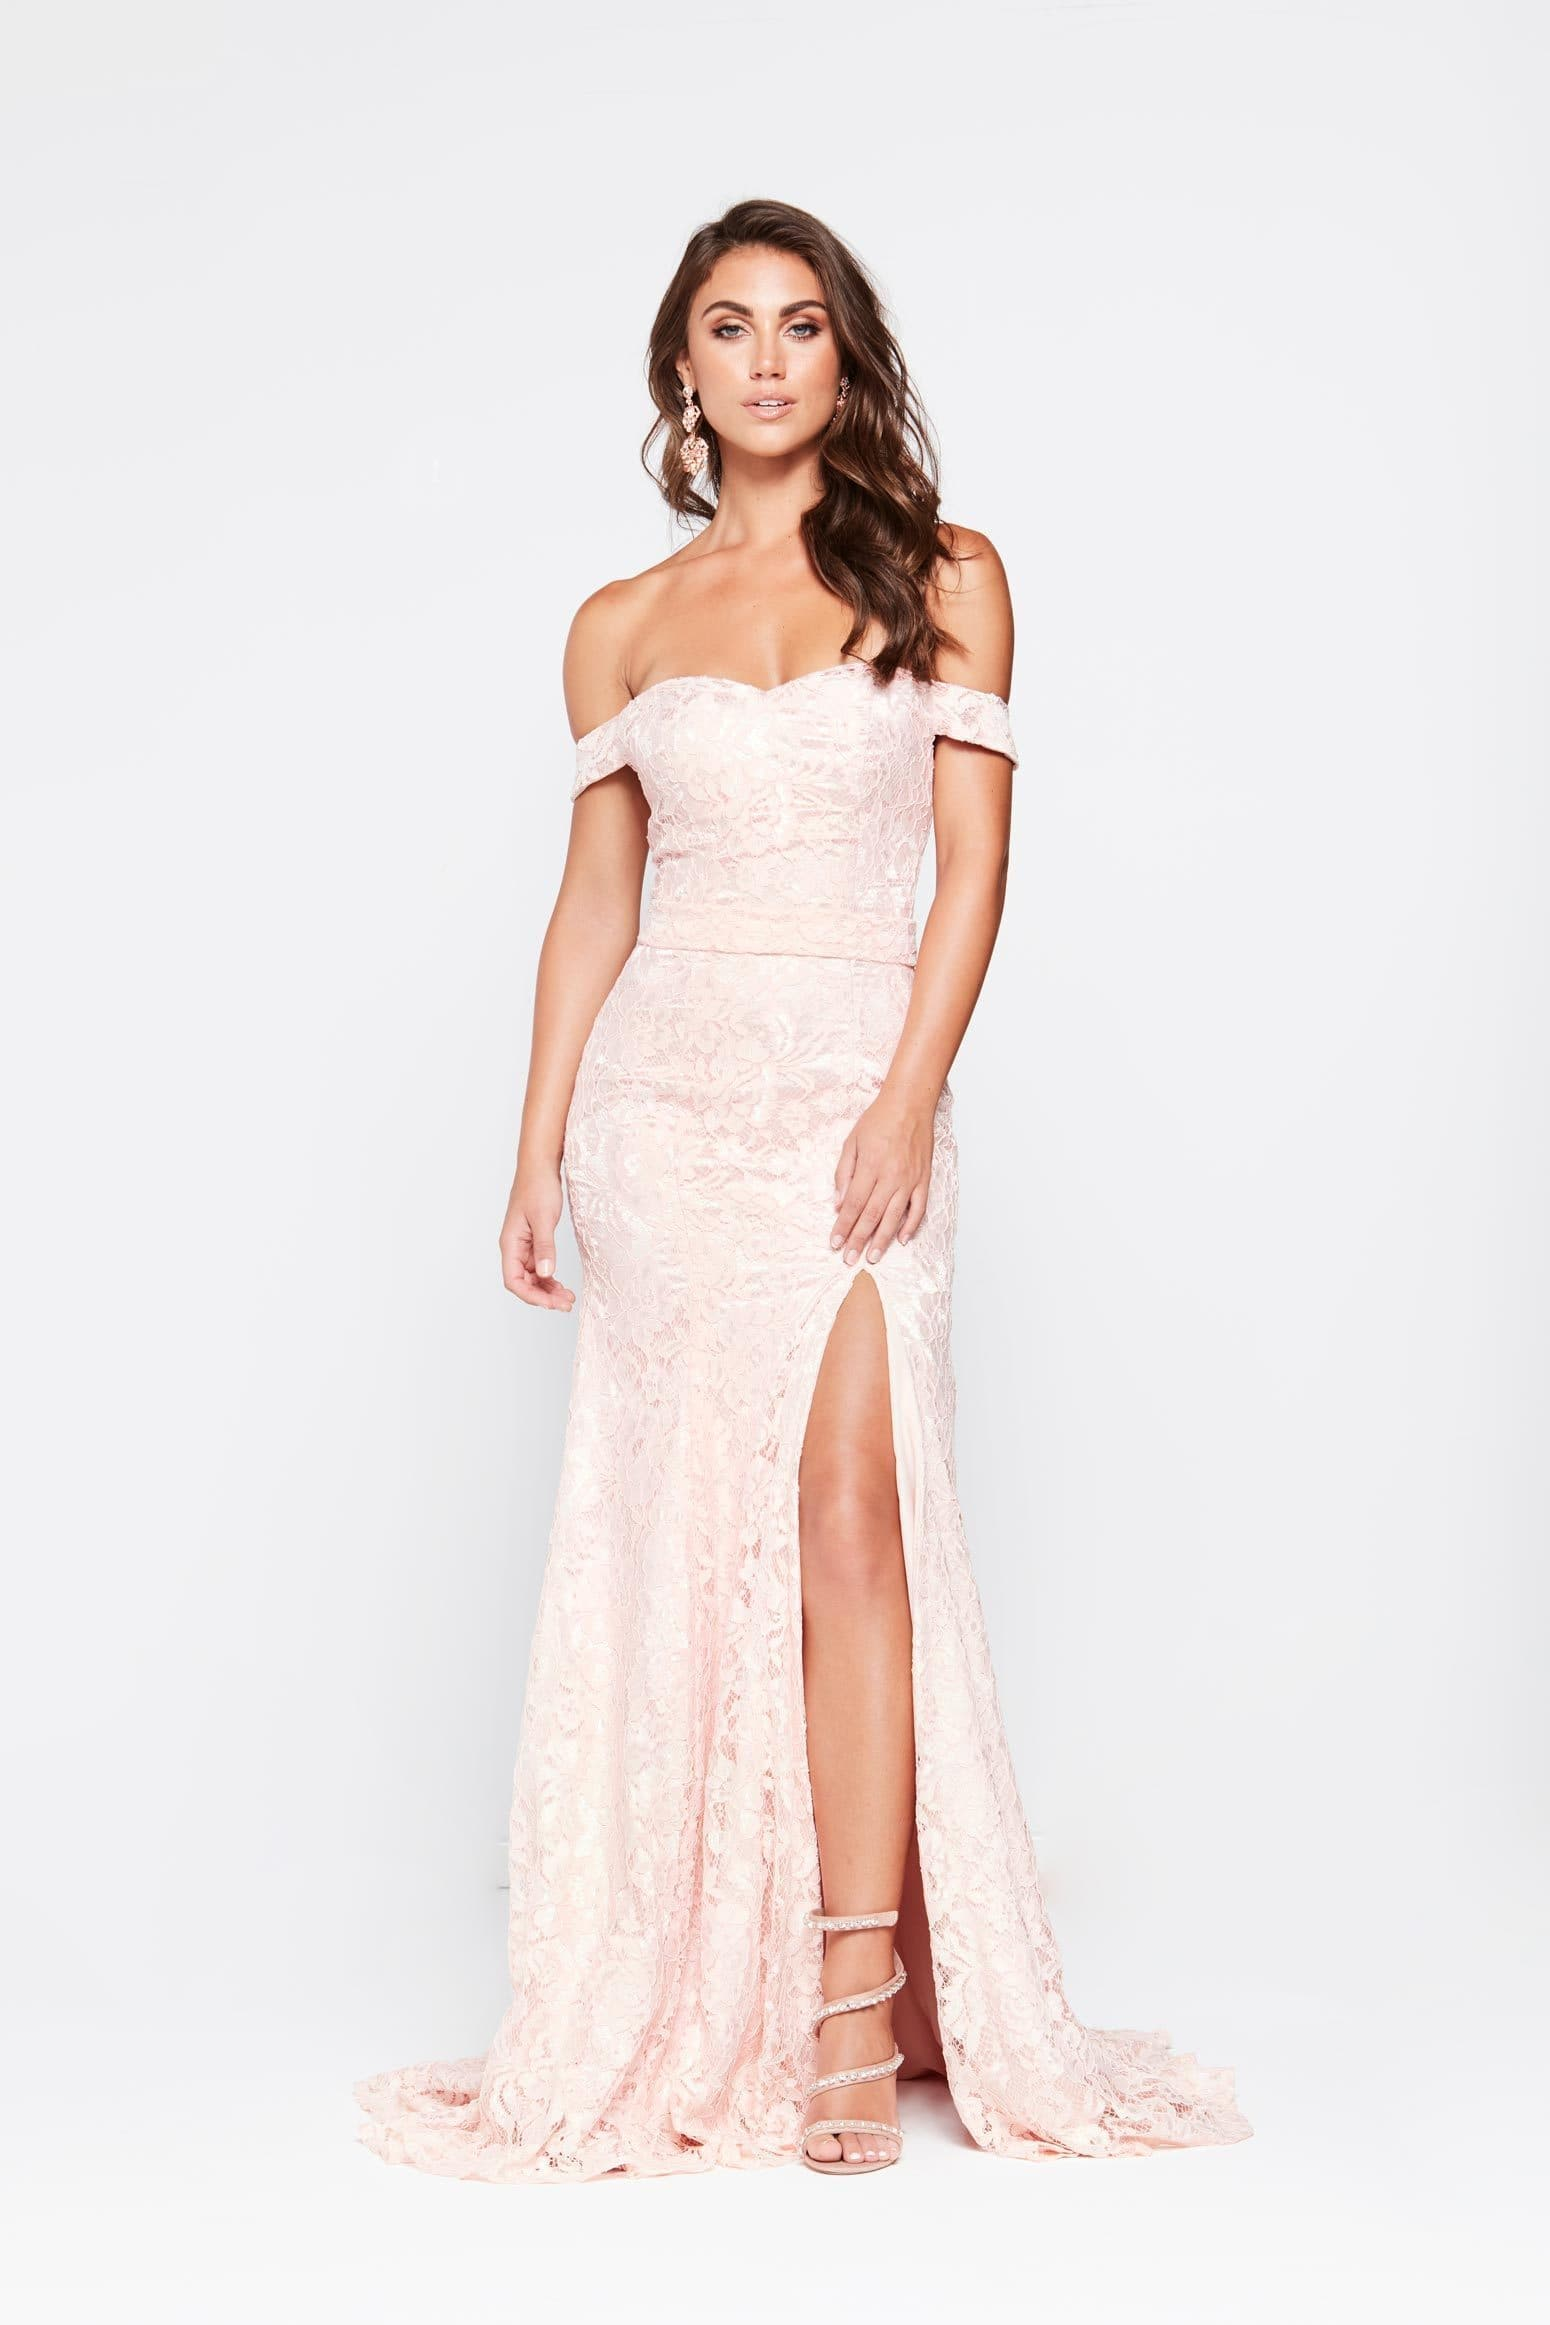 A&N Leyla - Blush Off-Shoulder Lace Gown with Front Slit